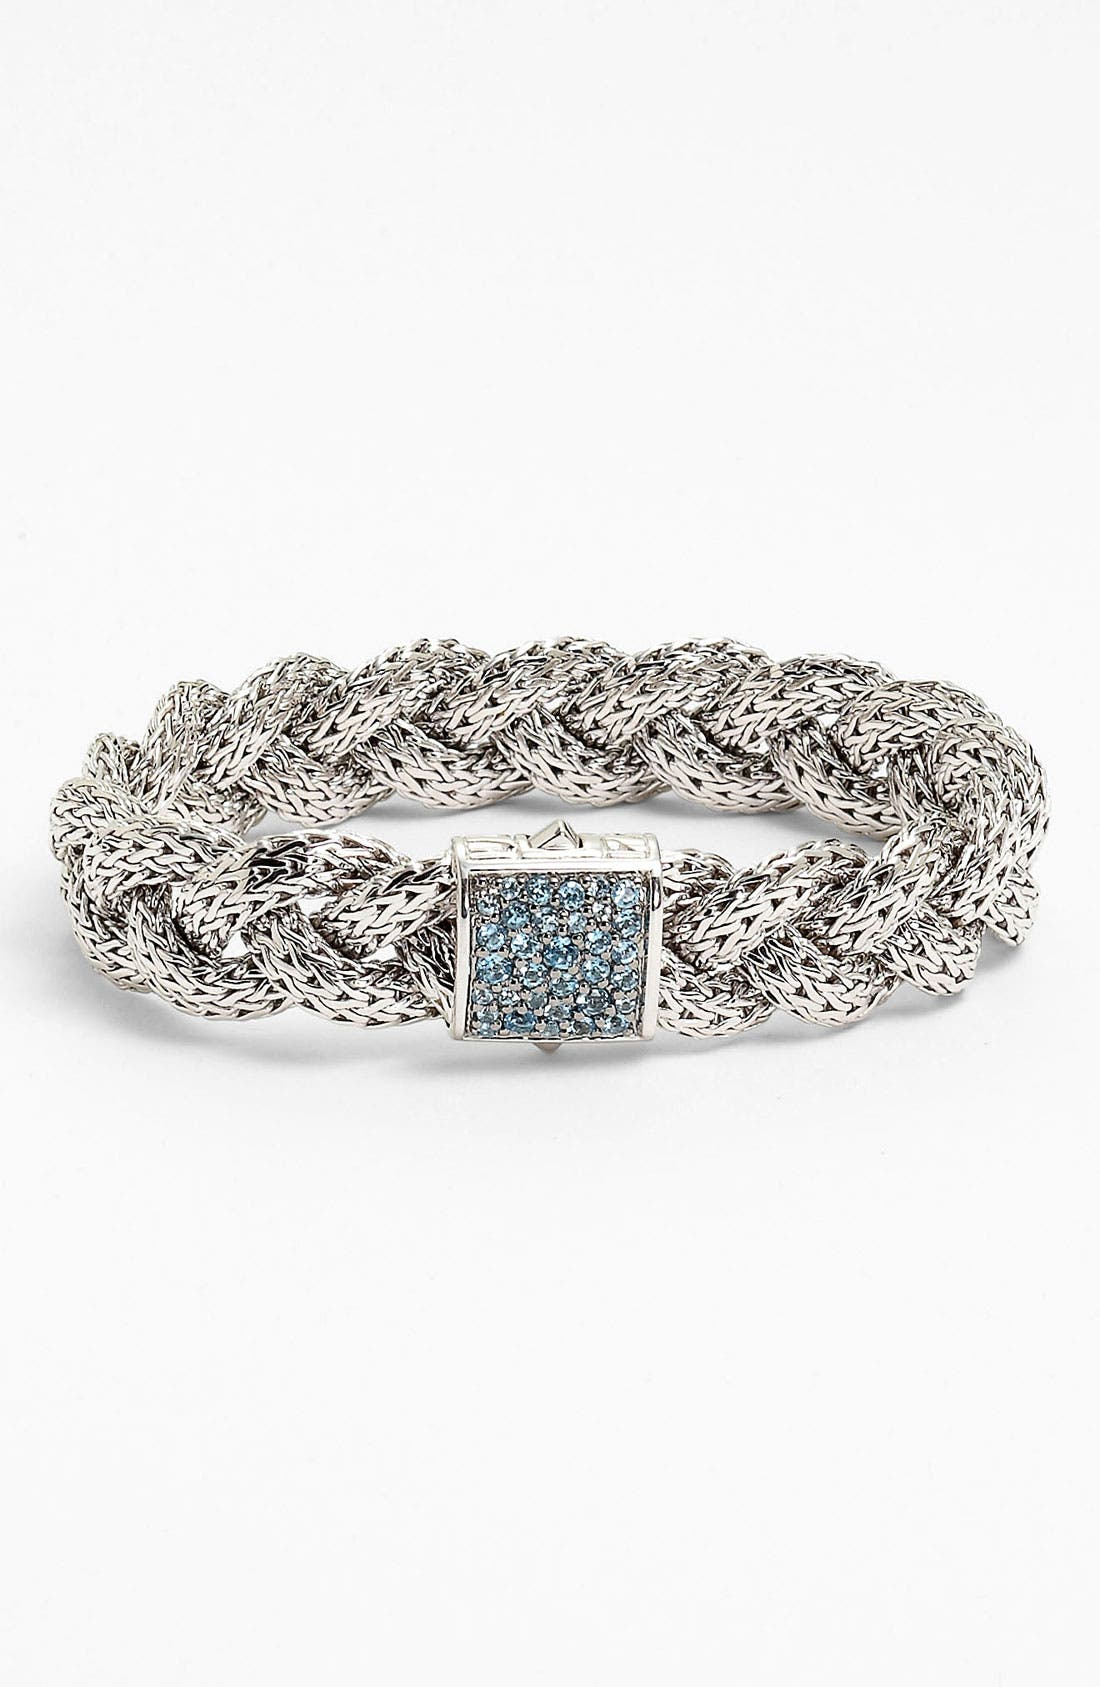 Main Image - John Hardy 'Classic Chain' Medium Braided Bracelet